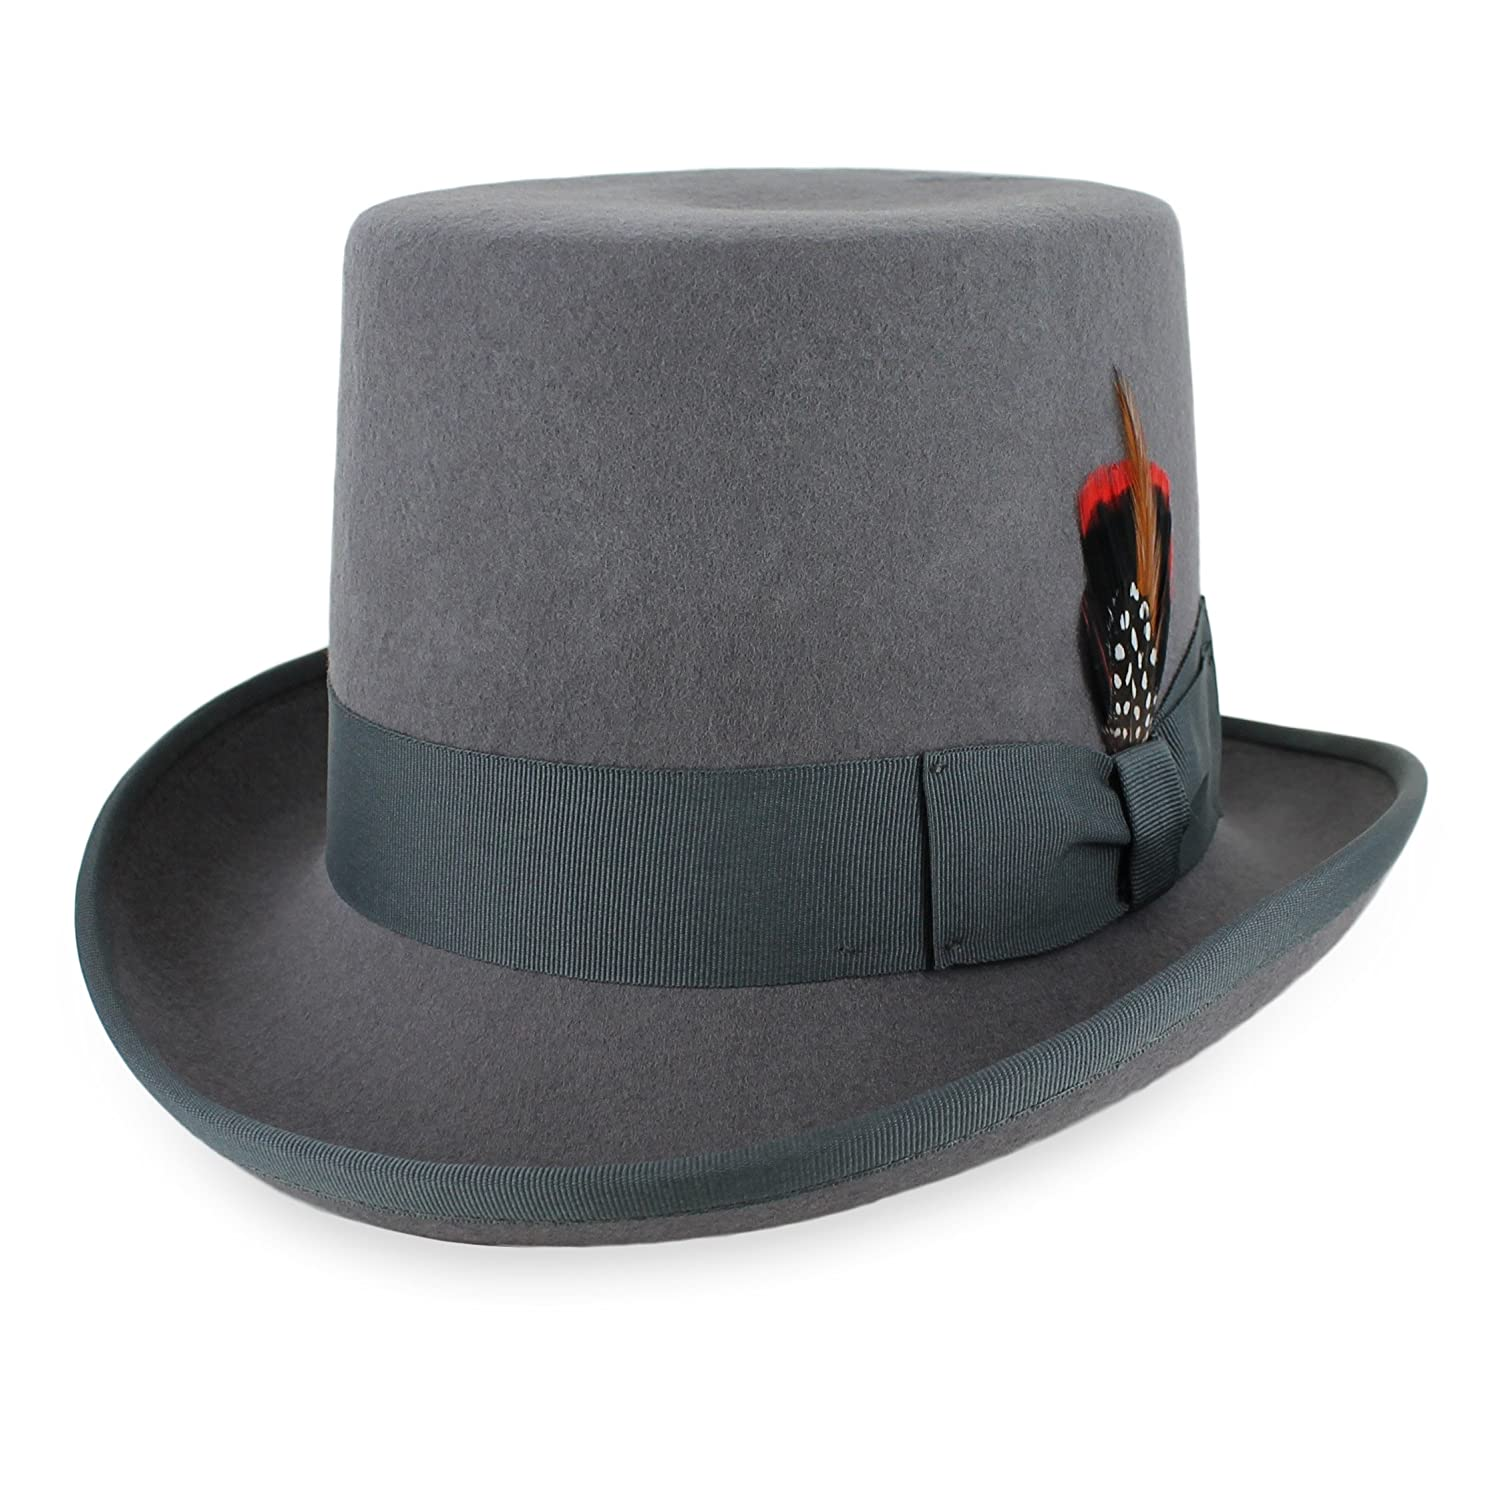 Steampunk Hats for Men | Top Hat, Bowler, Masks Mens Top Hat Satin Lined Topper by Belfry 100% Wool in Black Grey Navy Pearl $39.95 AT vintagedancer.com